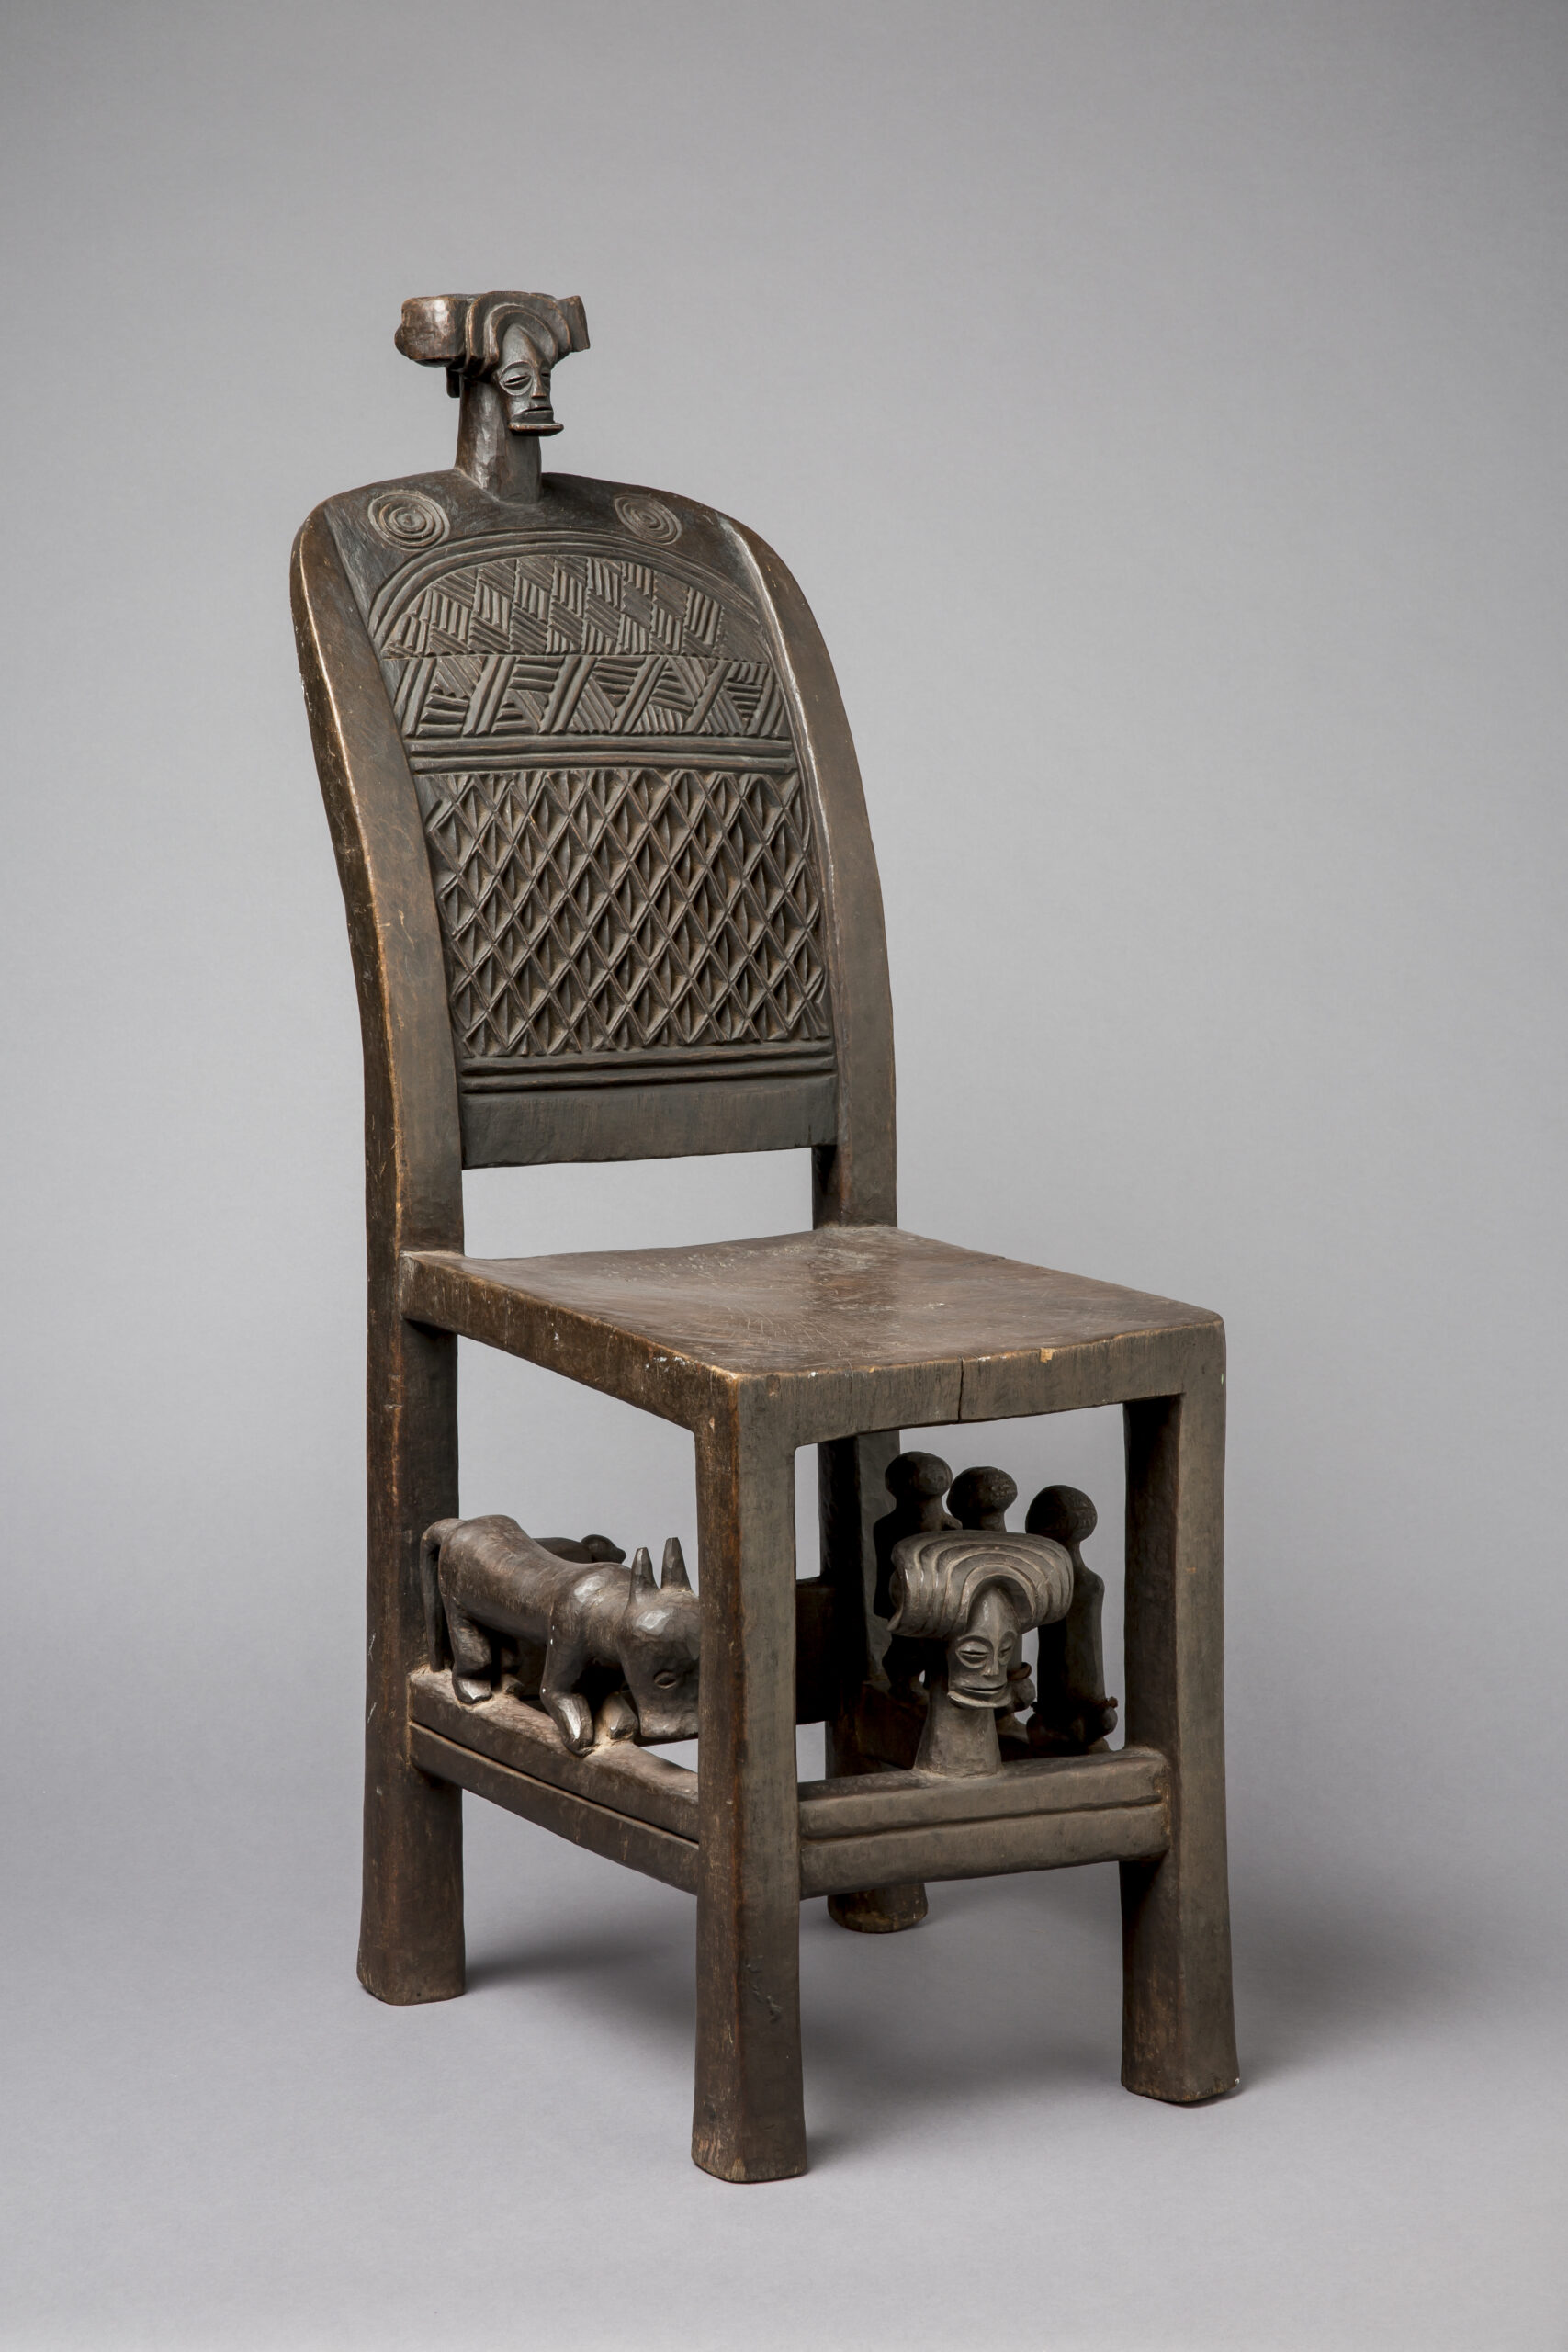 wooden chair with symbolic carvings